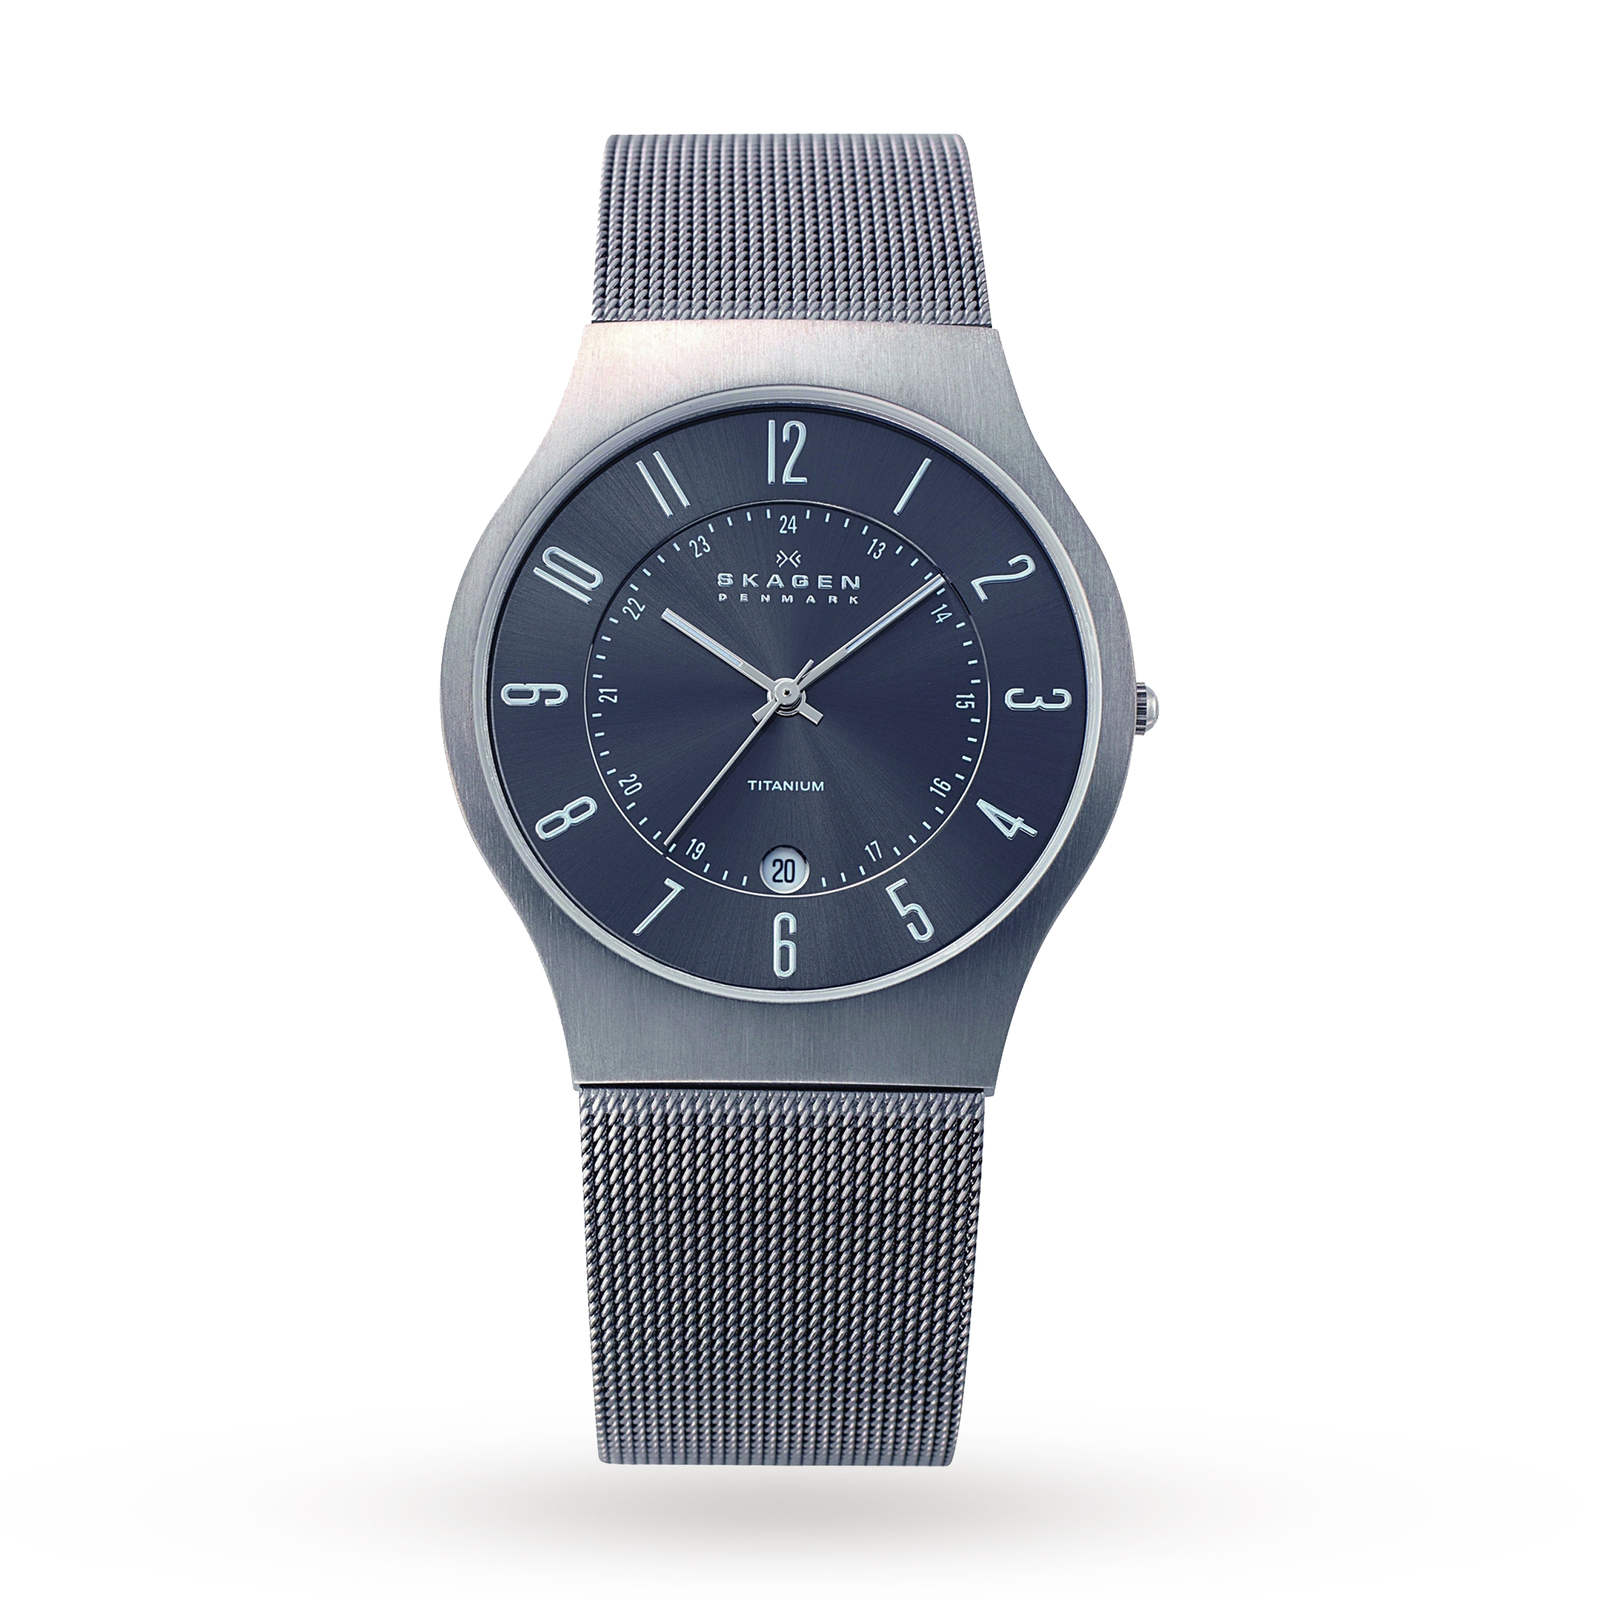 Skagen Men's Grenen Titanium Watch